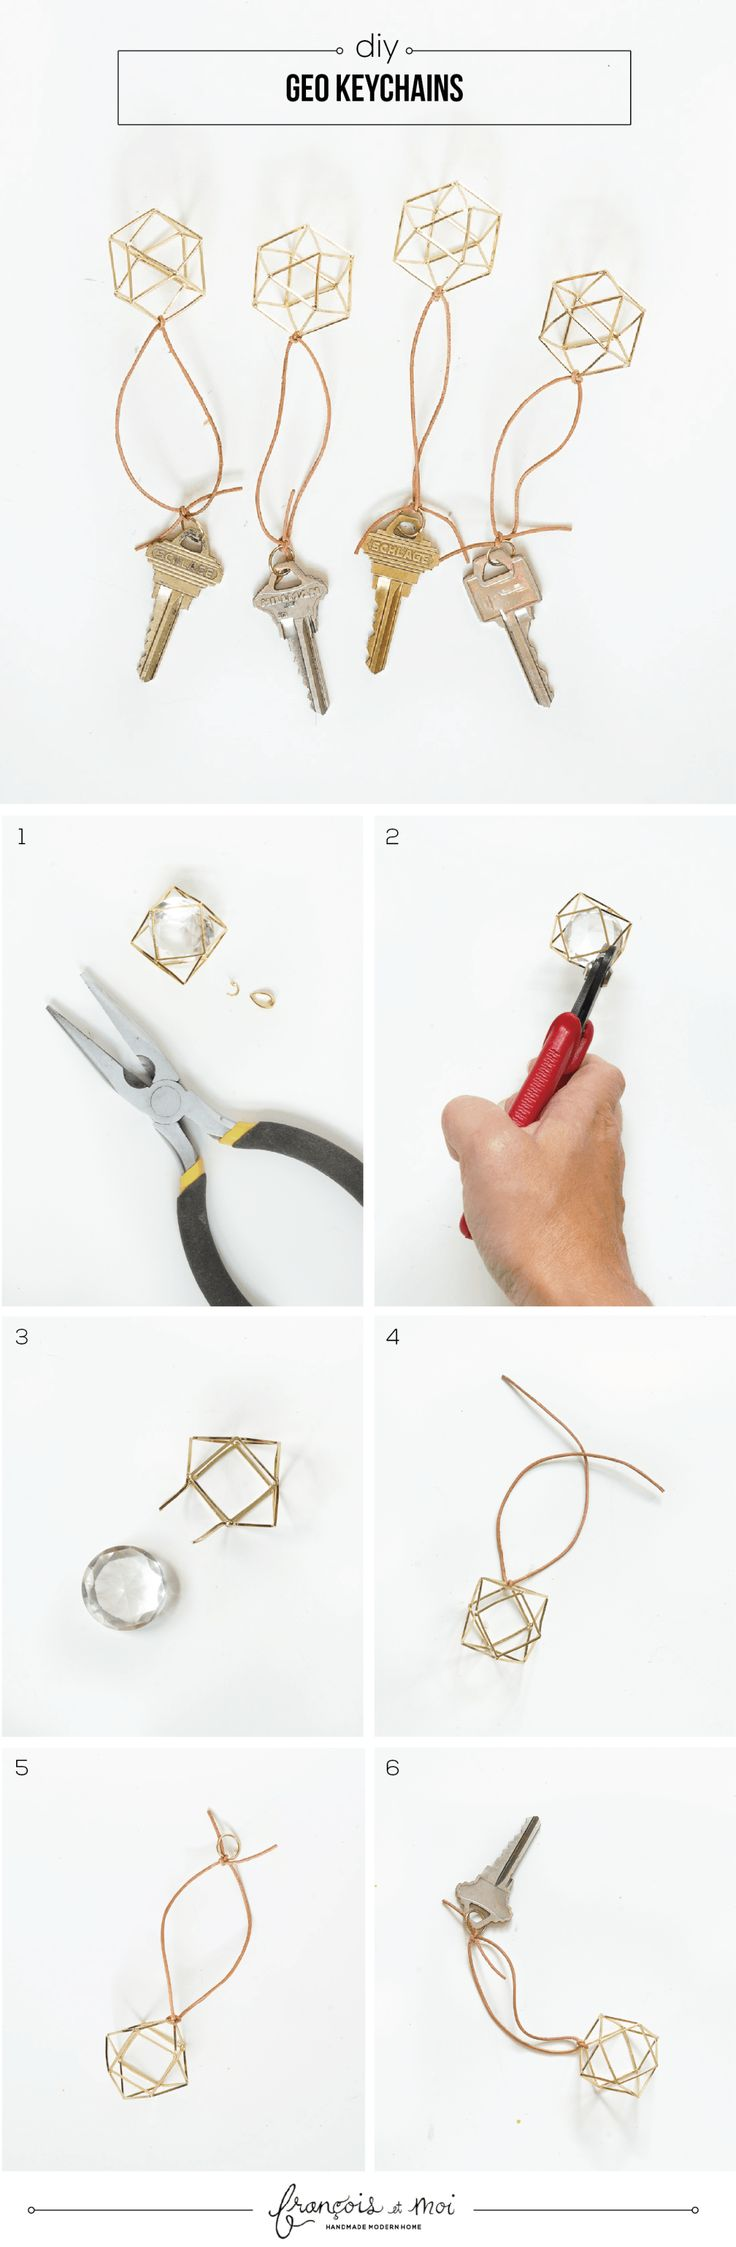 DIY Geometric Keychain Tutorial